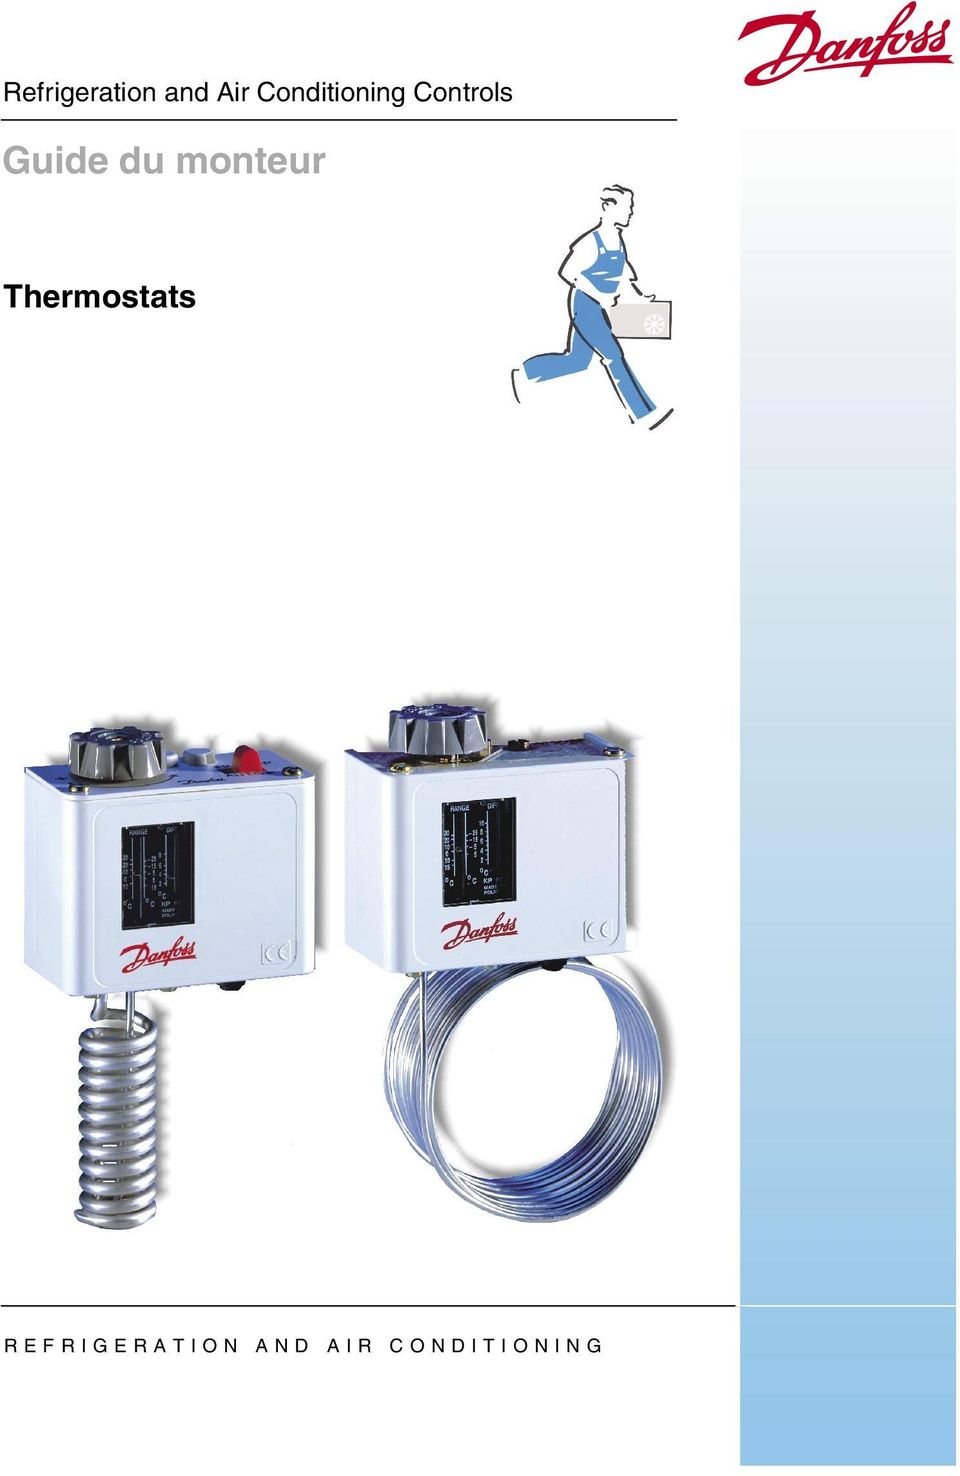 Thermostat Chambre Froide Guide Du Monteur Thermostats Pdf